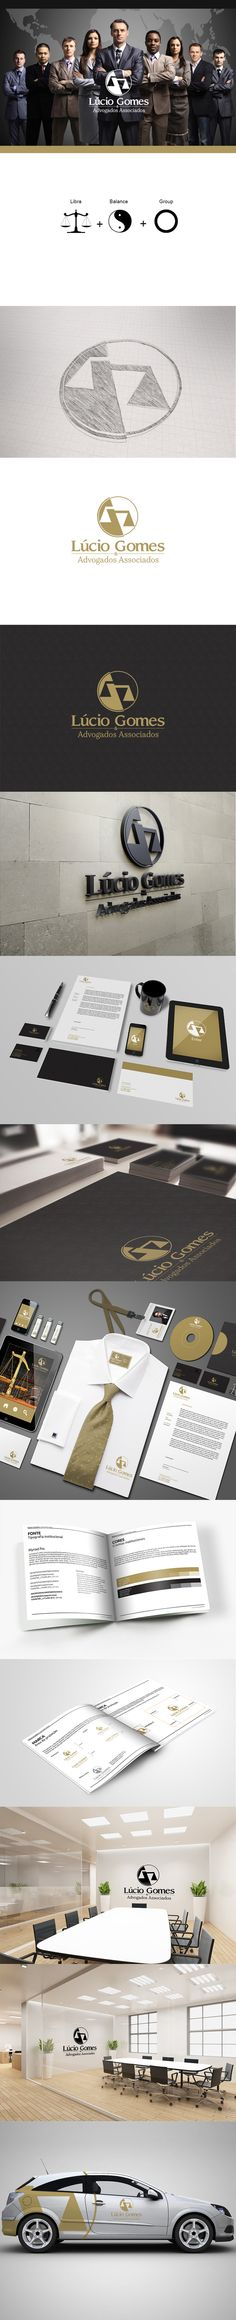 Lúcio Gomes Advogados e Associados by William Villas Boas, via Behance